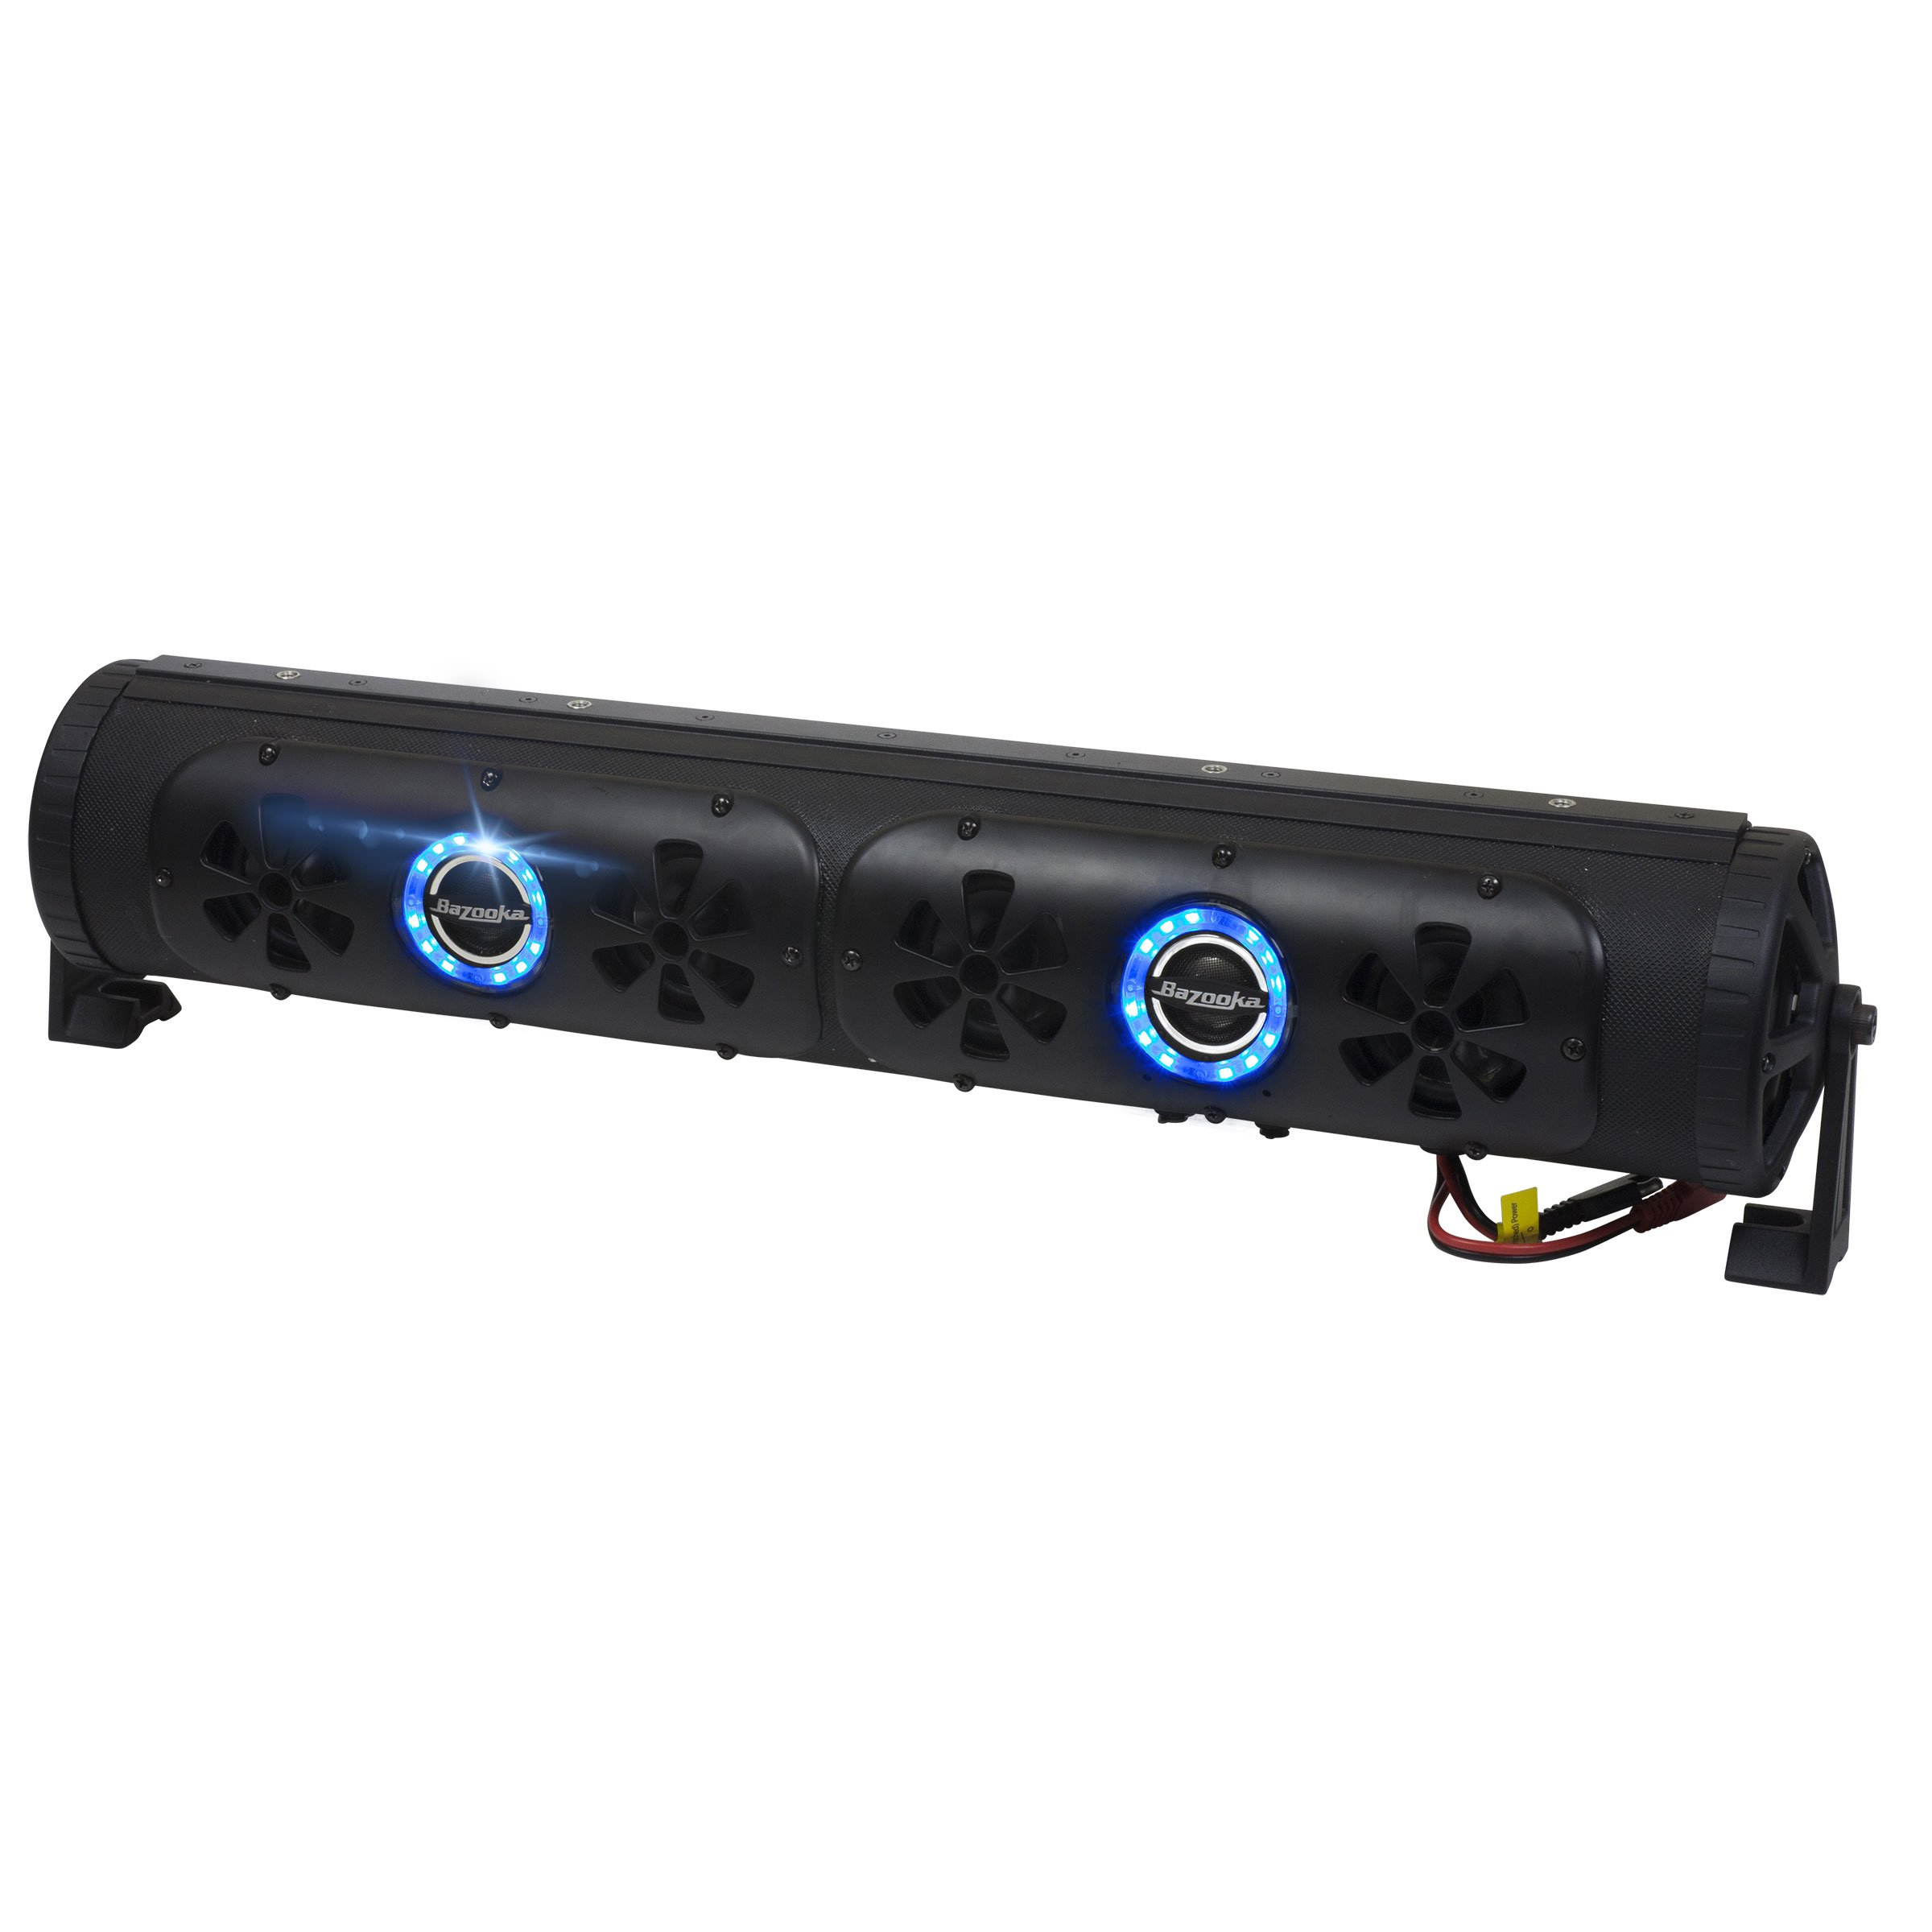 Bazooka BPB24 - 24in Bluetooth Party Bar Off Road Sound Bar and LED Illumination System